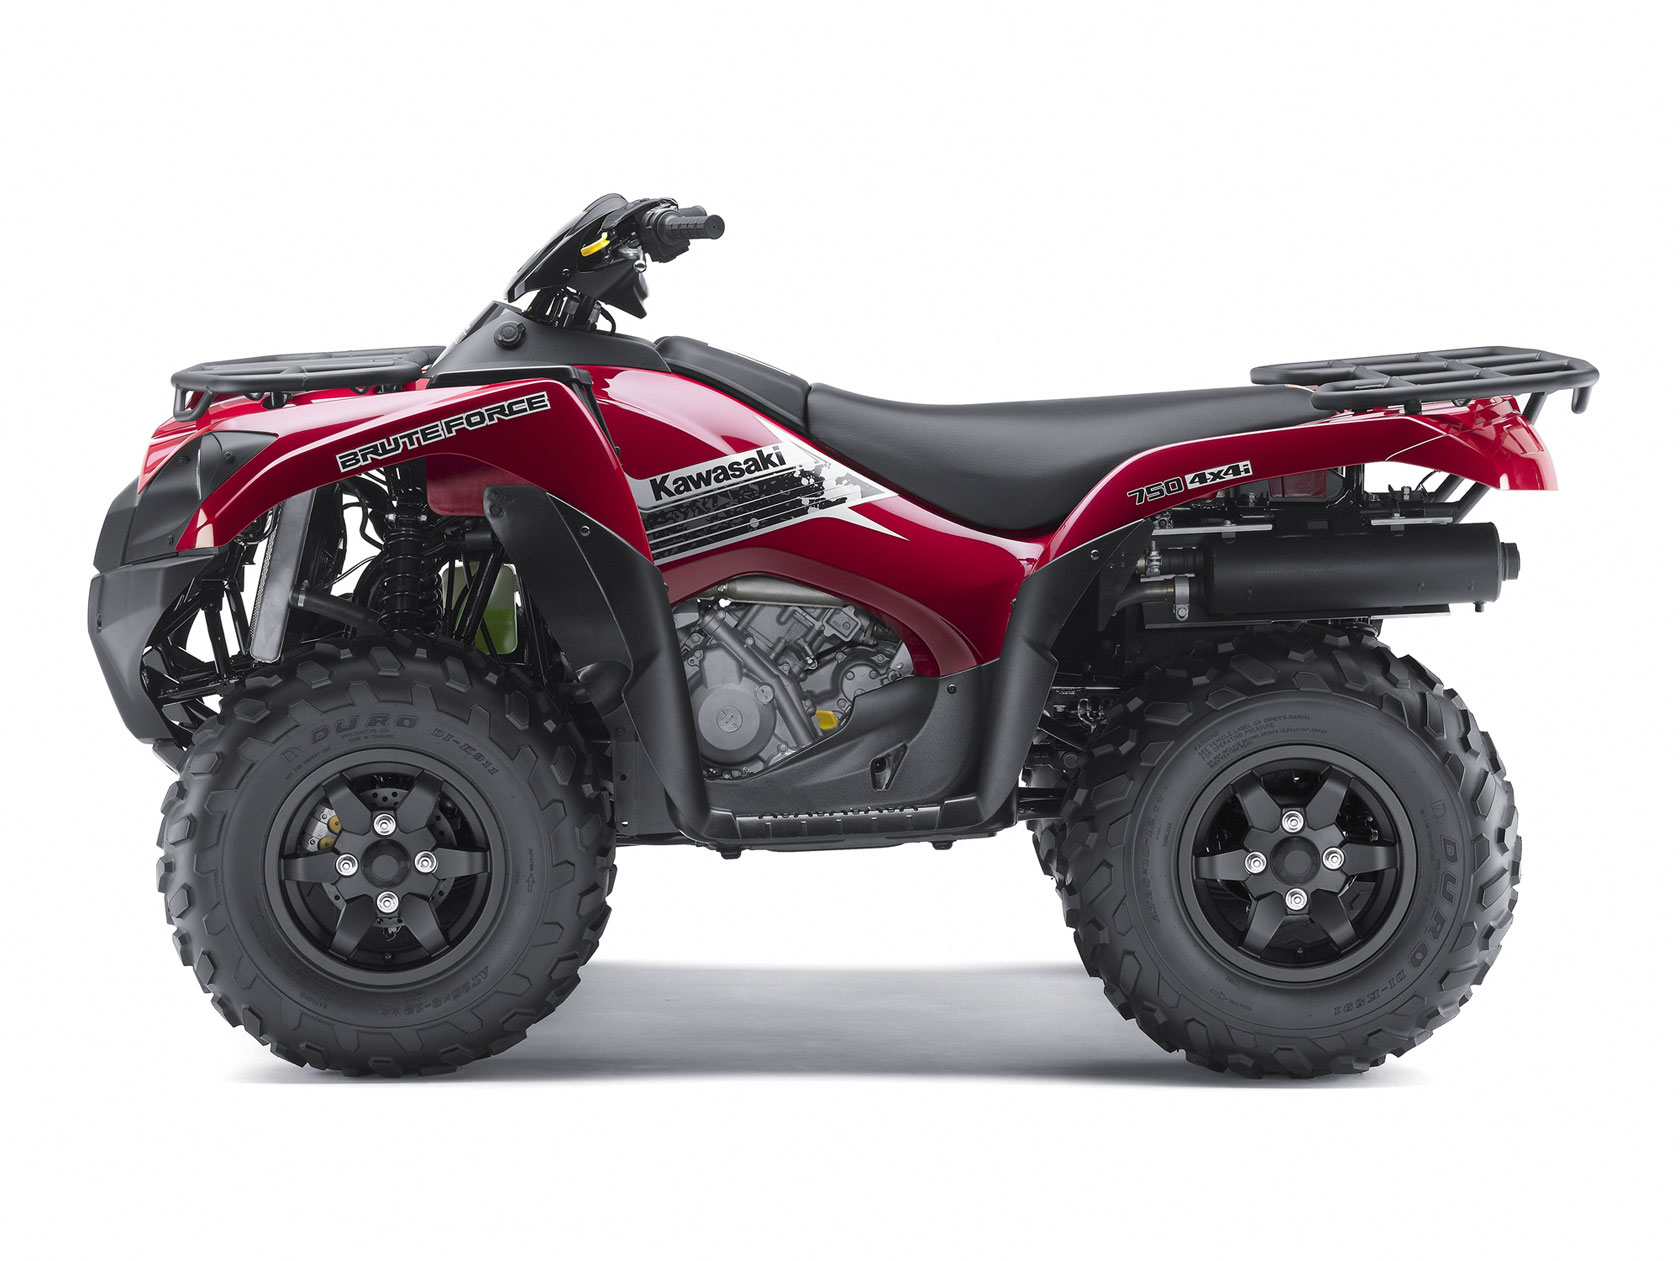 Kawasaki Brute Force 750 Fuse Box Free Download Wiring Diagram 2005 2012 4x4i Review As Well Mods Also